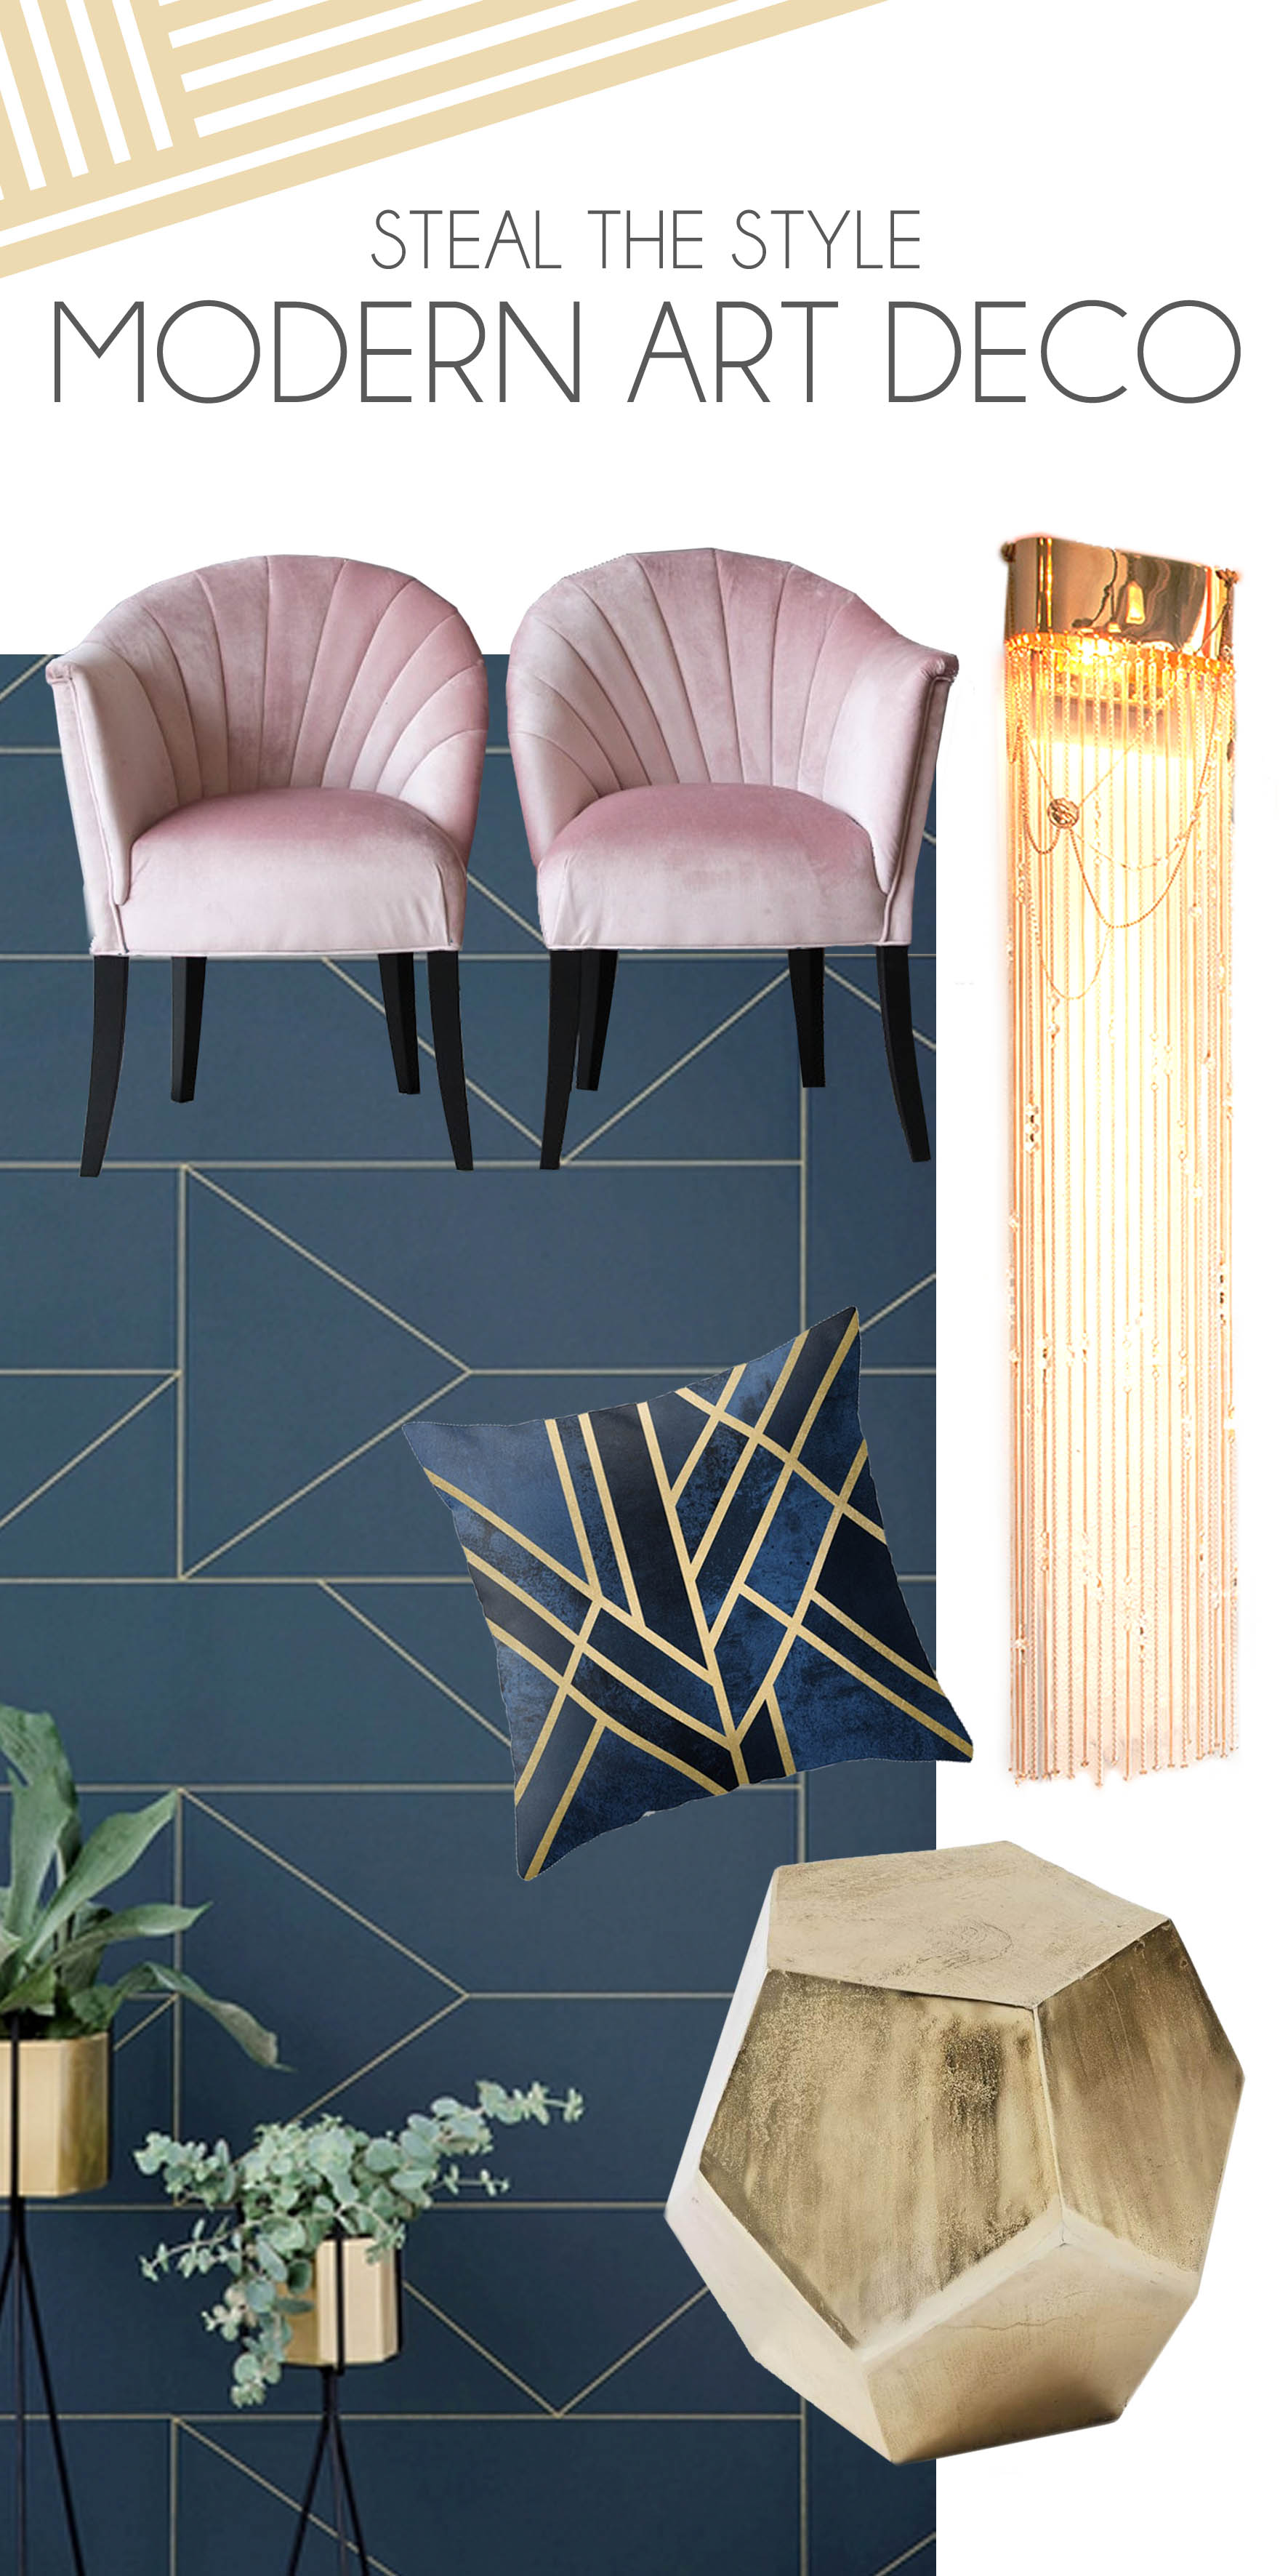 How to achieve the modern art deco look